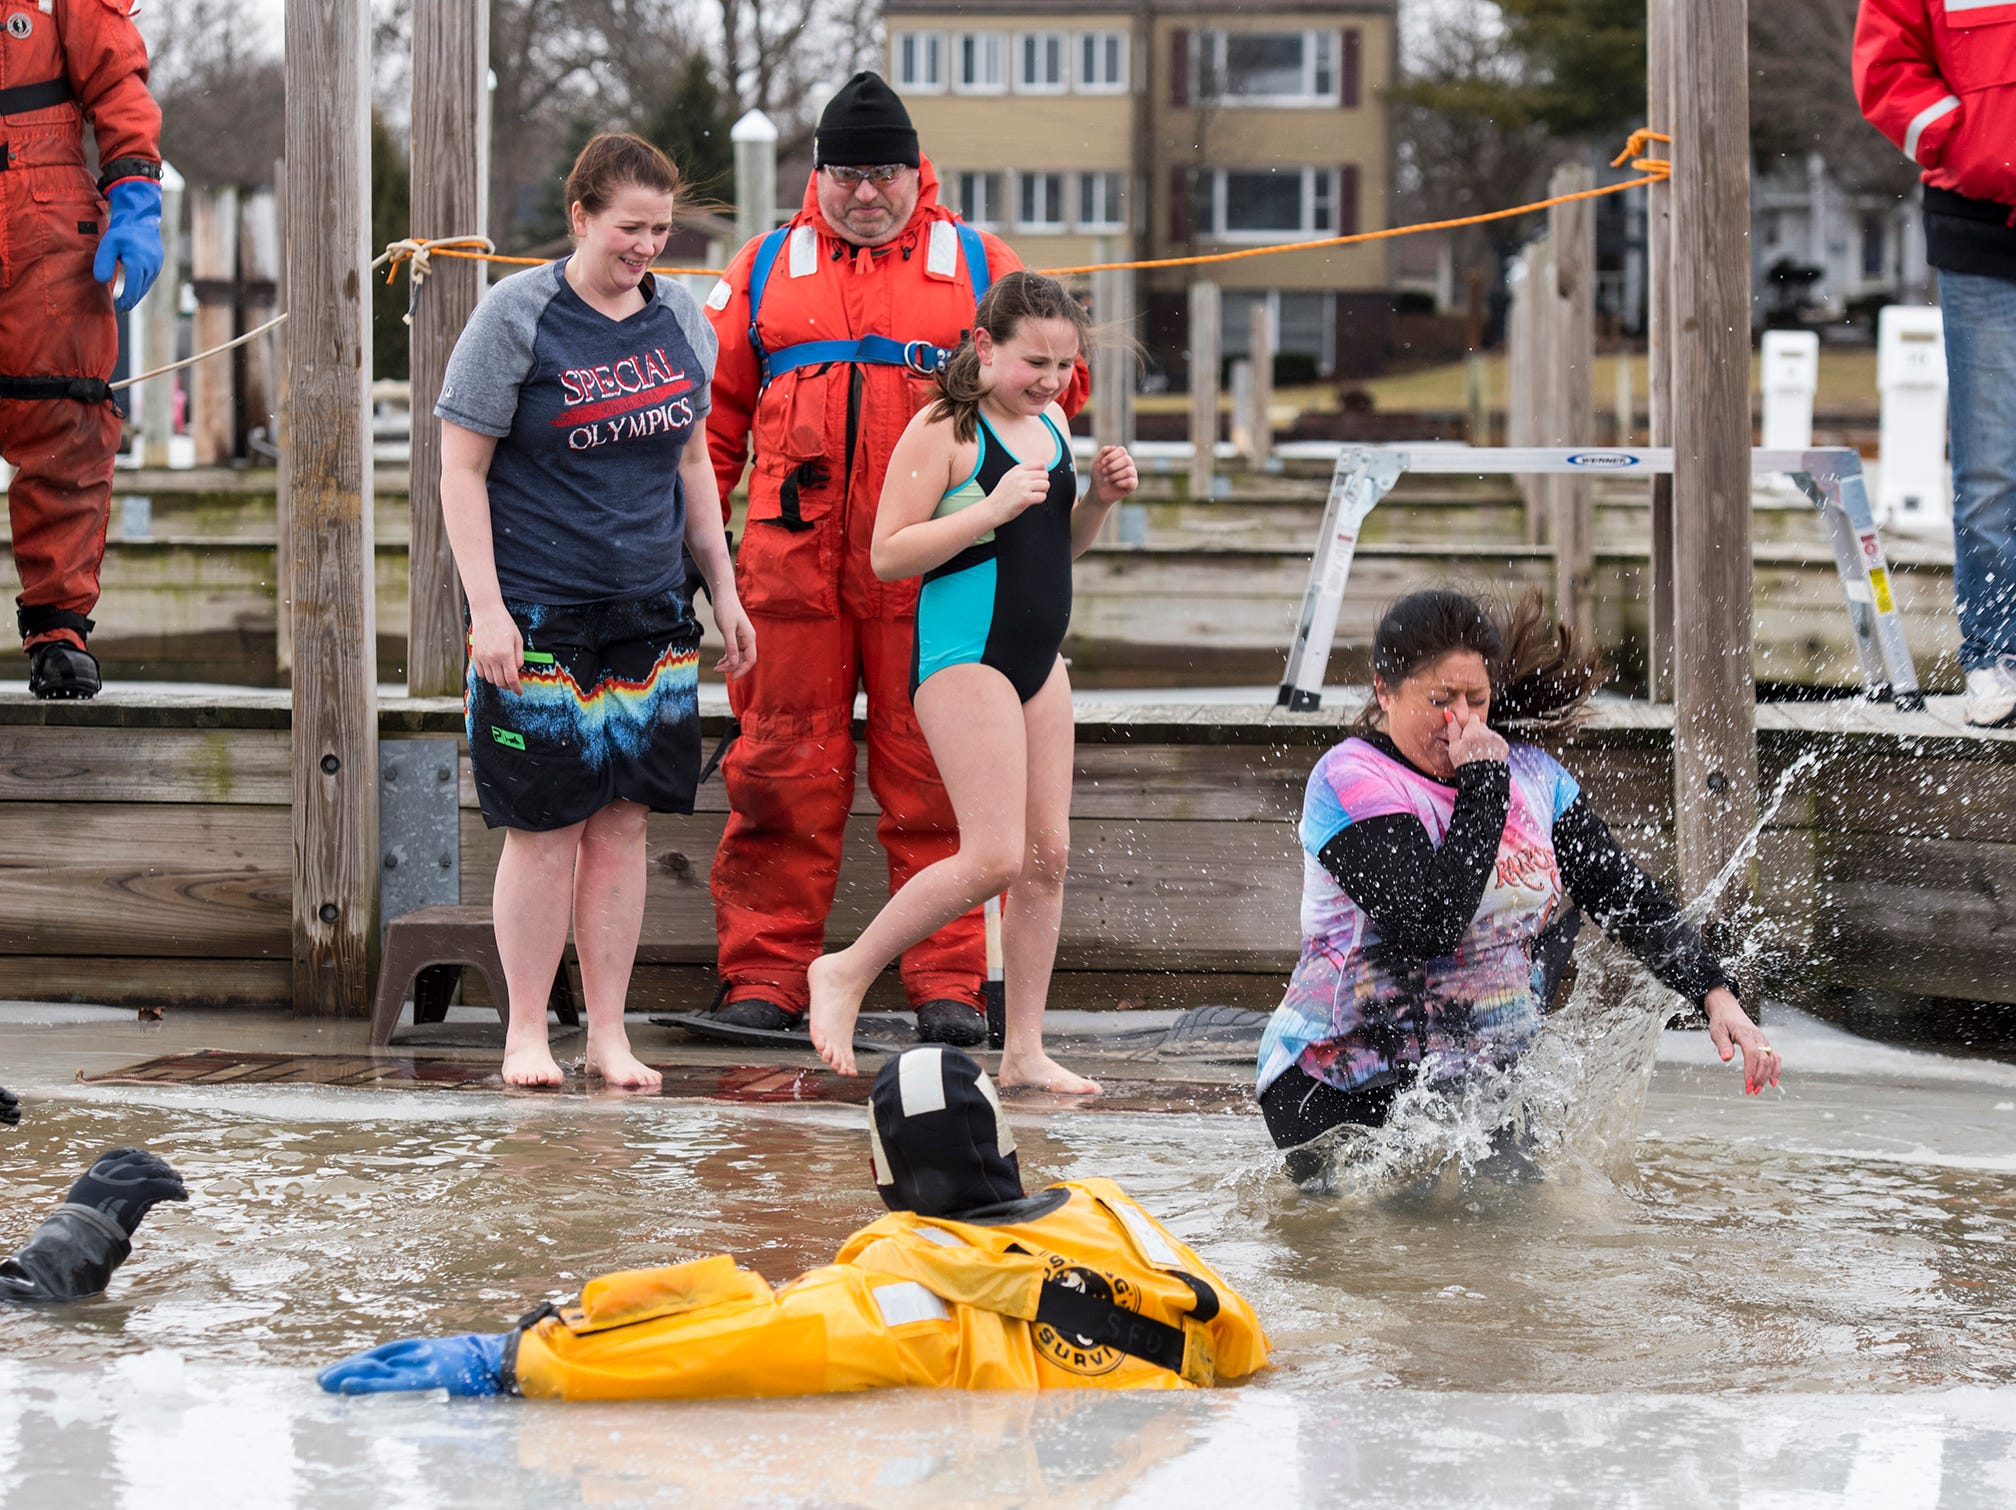 Audrey Bishop, right, and Olovia Doherty, center, watch as Theresa Kean plunges into the St. Clair Boat Harbor Sunday, Feb. 24, 2019 during the annual St. Clair Polar Plunge.